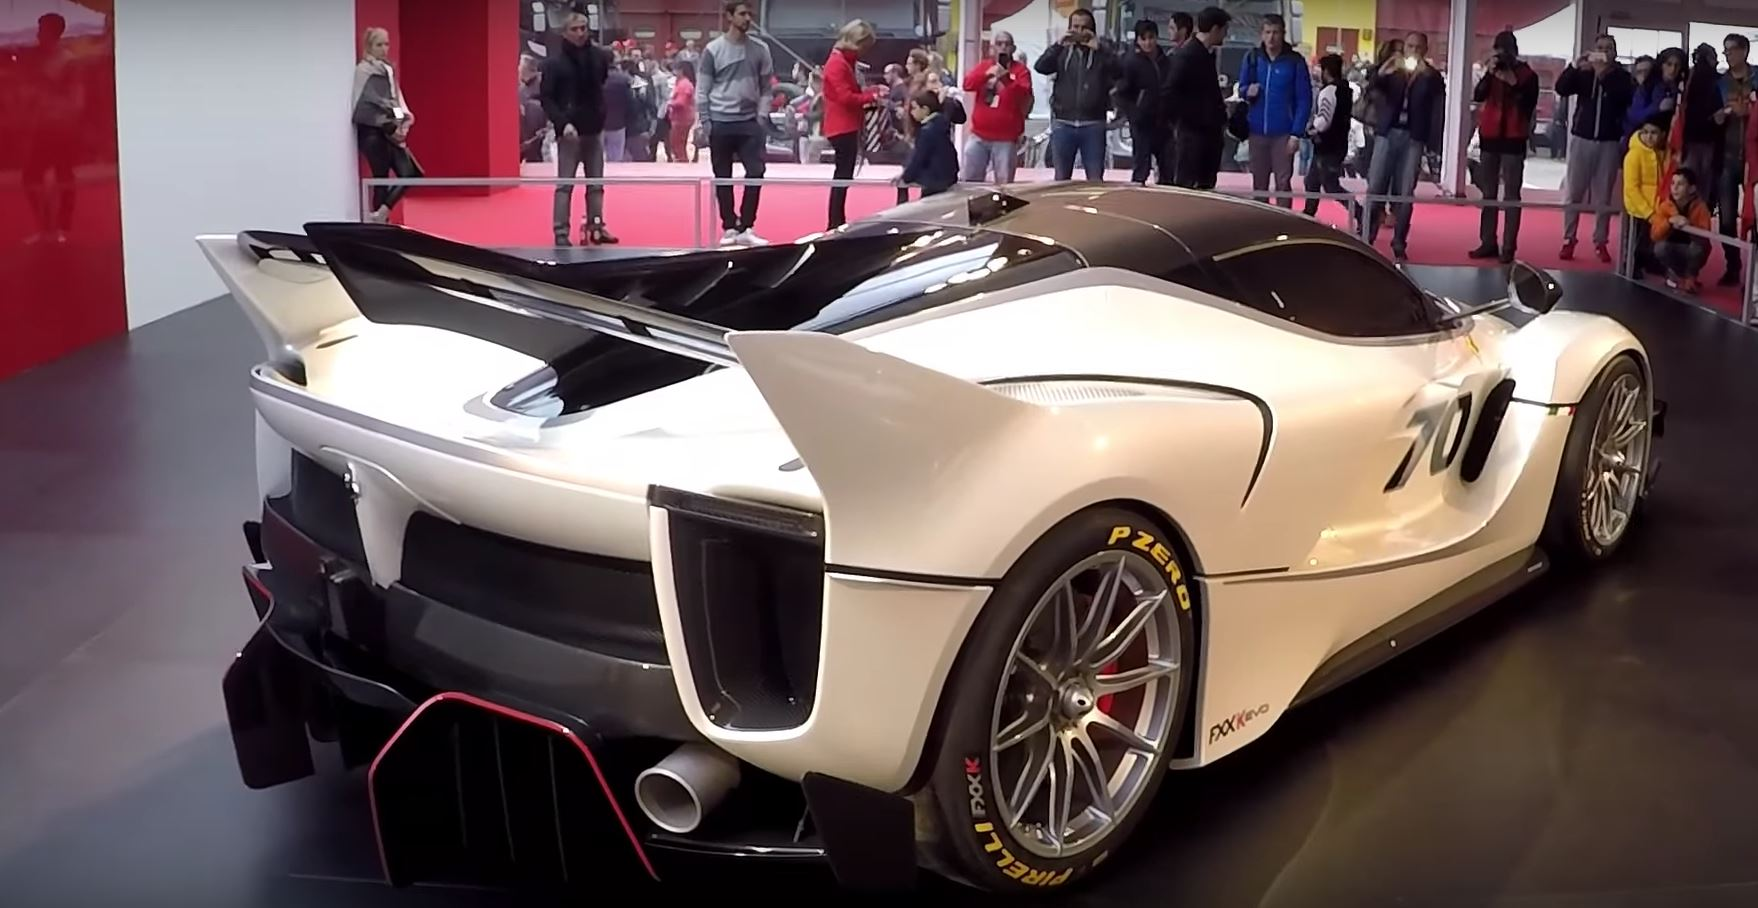 ferrari fxx k evo exclusividad aerodin mica y 1 050 cv lista de carros. Black Bedroom Furniture Sets. Home Design Ideas